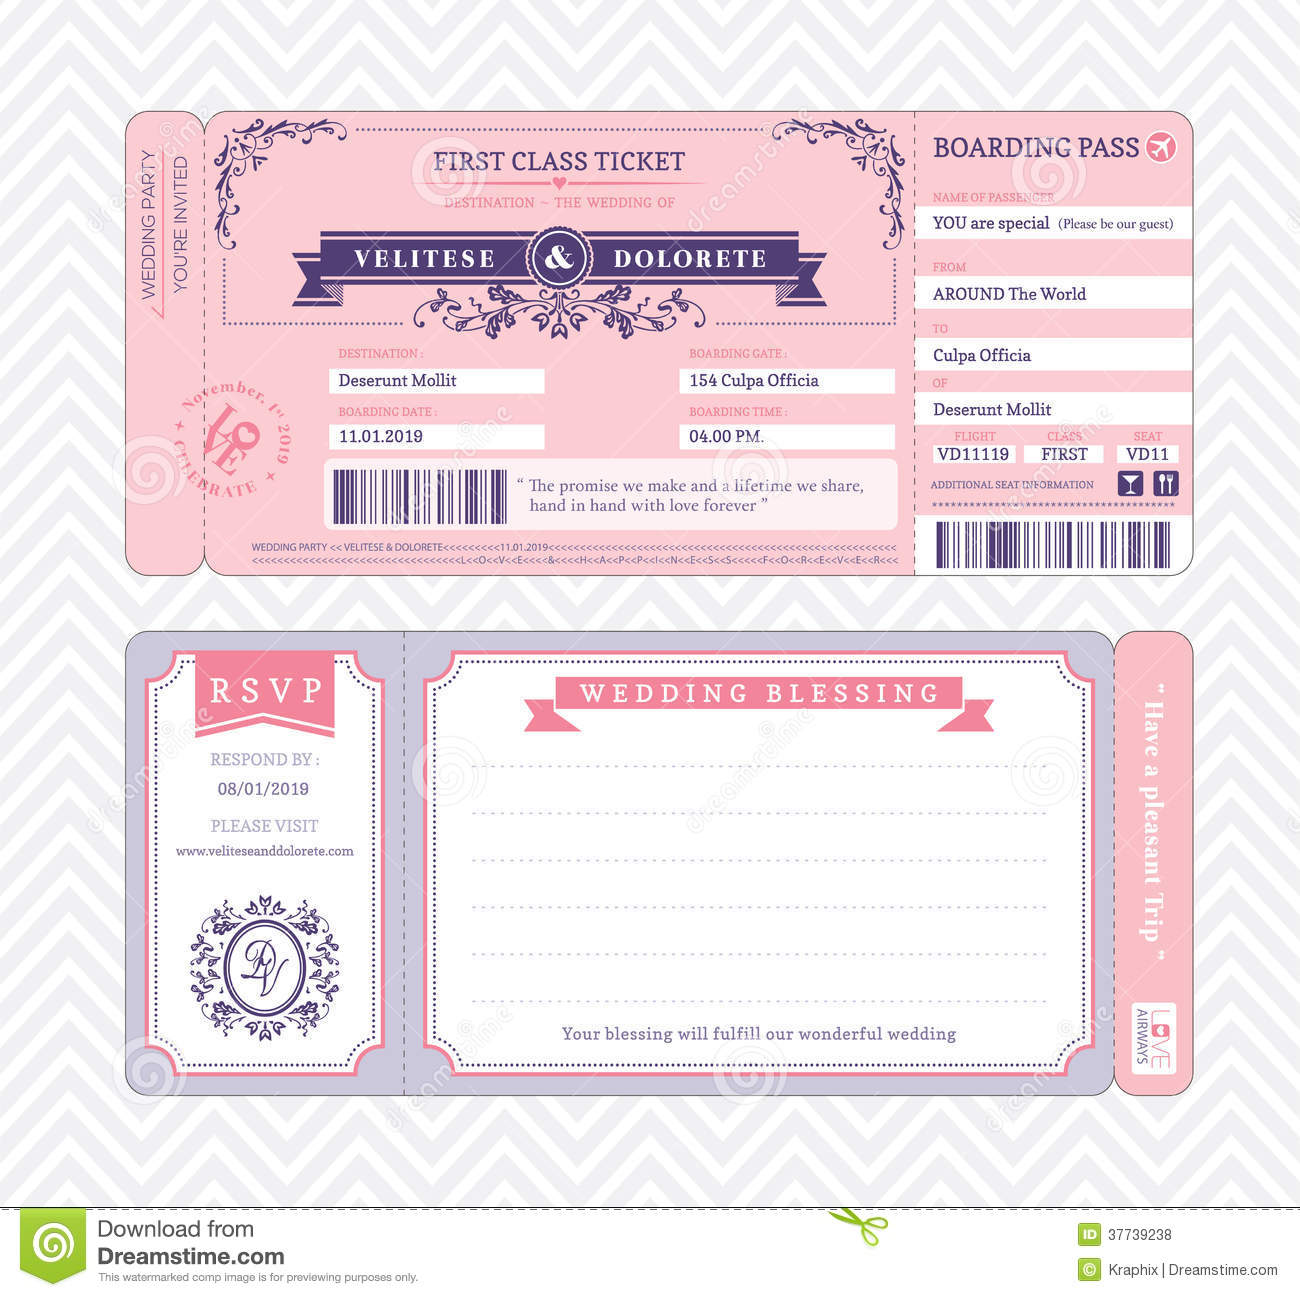 Boarding Pass Wedding Invitation Template Stock Vector - Wedding invitation templates: free printable wedding templates for invitations